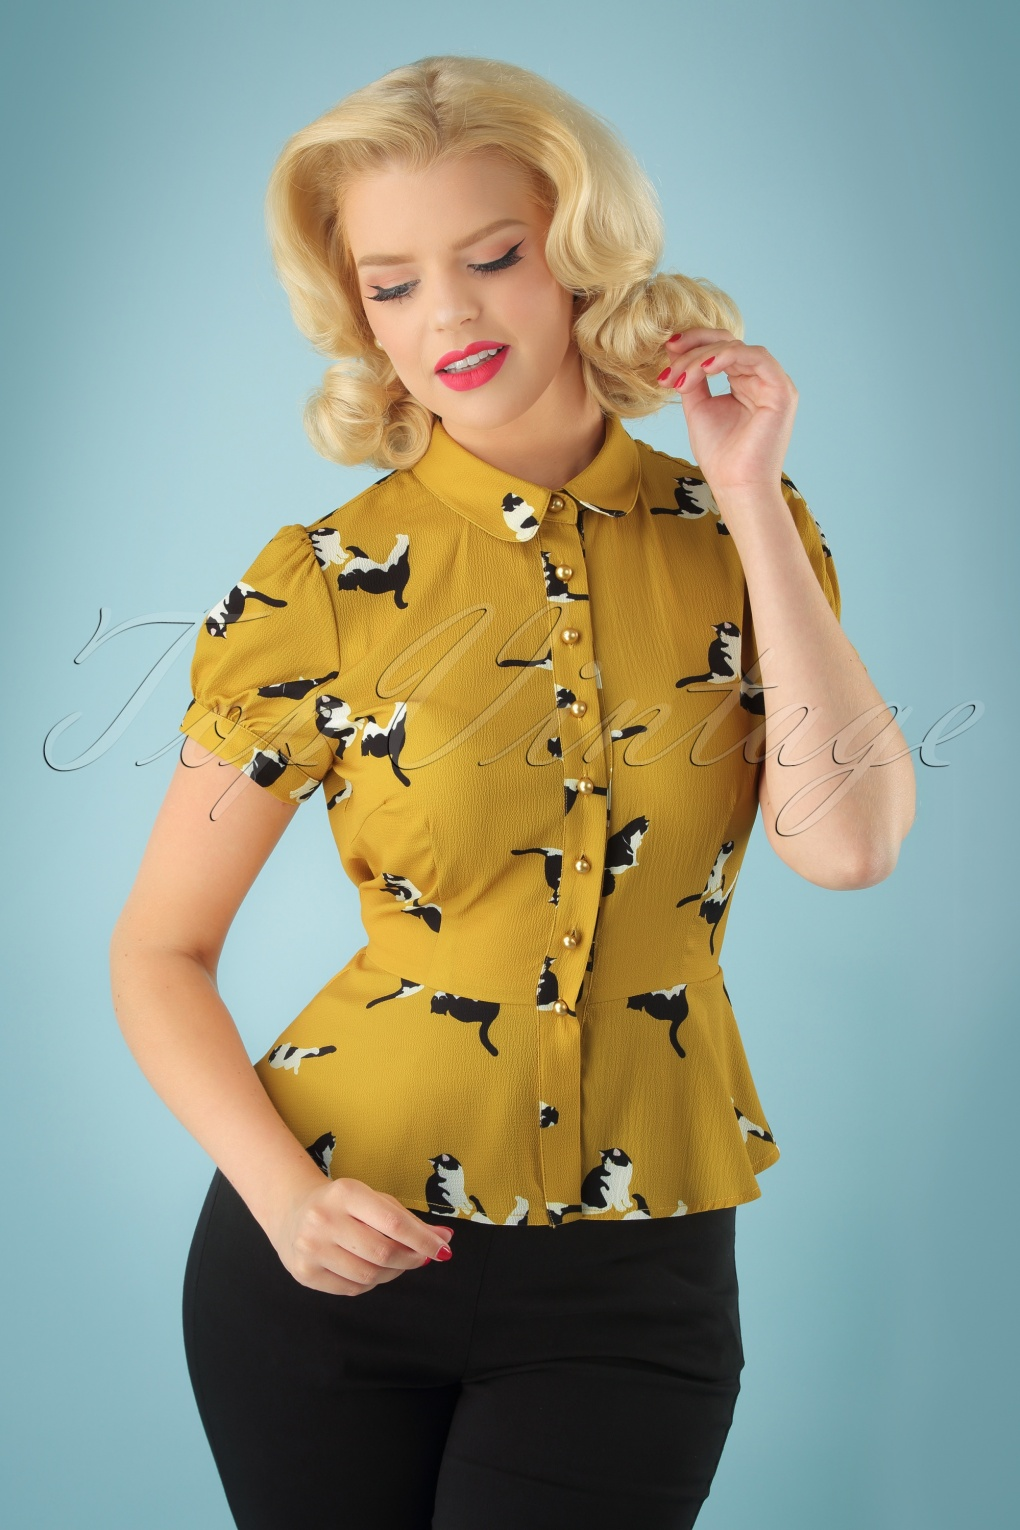 Vintage & Retro Shirts, Halter Tops, Blouses 40s Mary Grace Kitty Cat Blouse in Mustard £34.77 AT vintagedancer.com